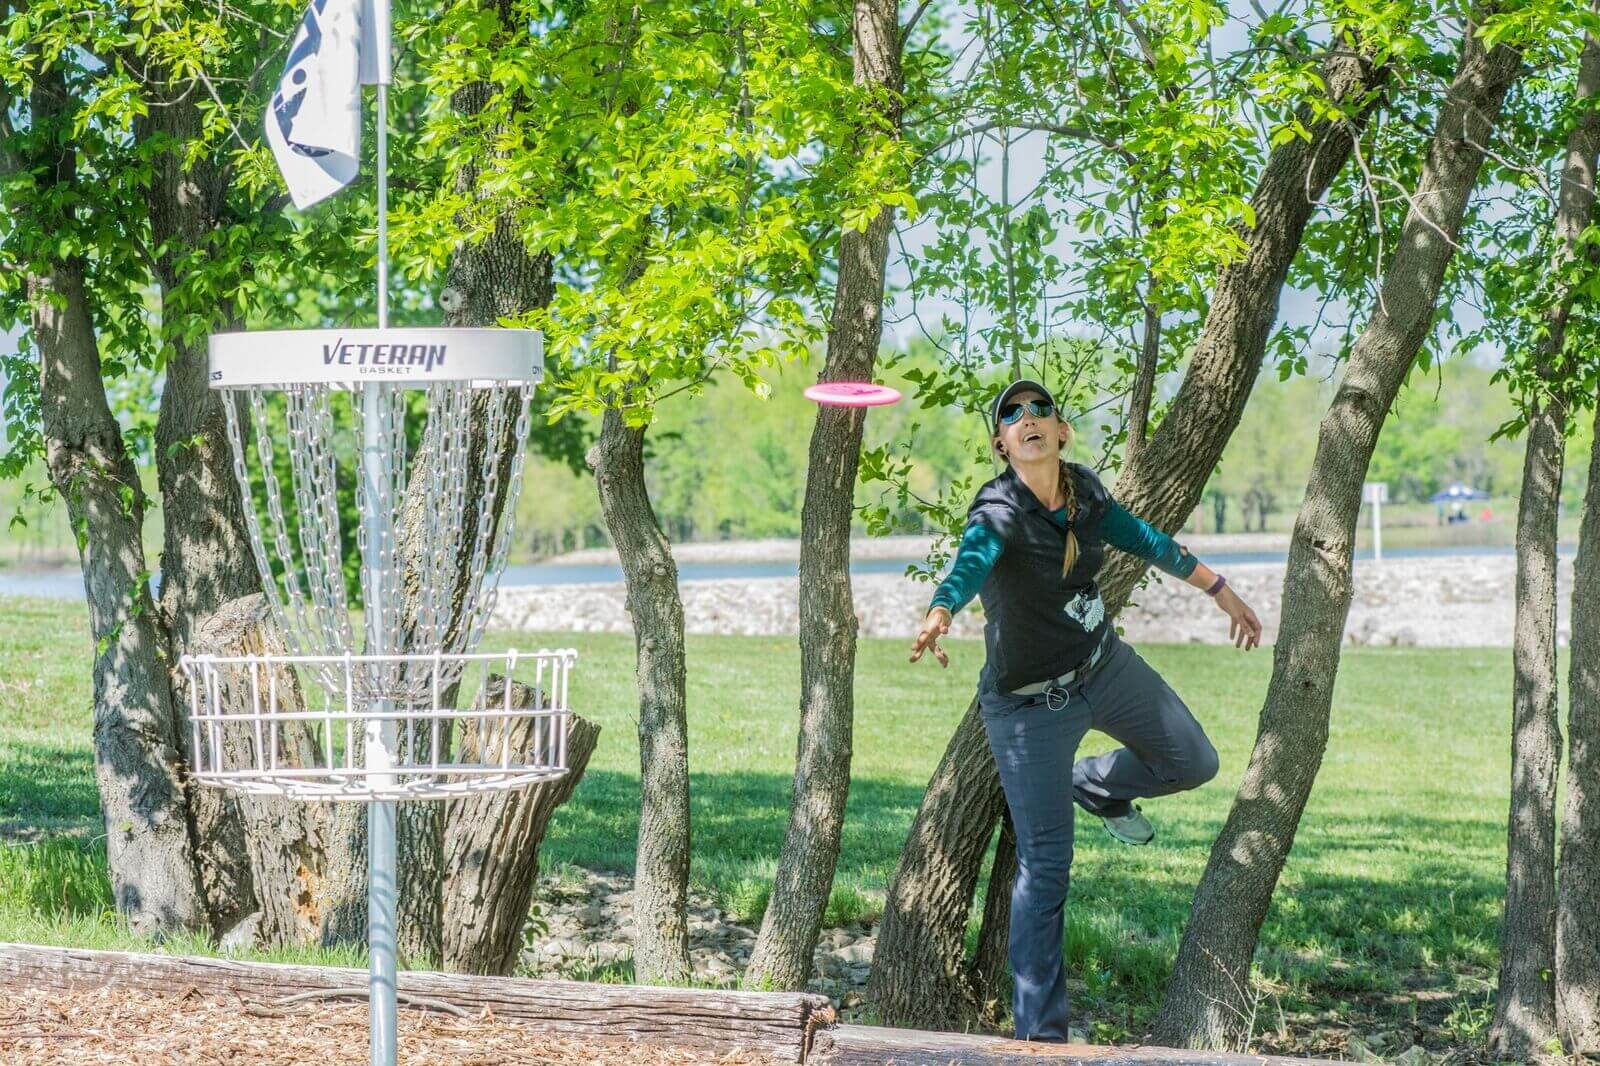 Disc golfer at Glass Blown Open Tournament